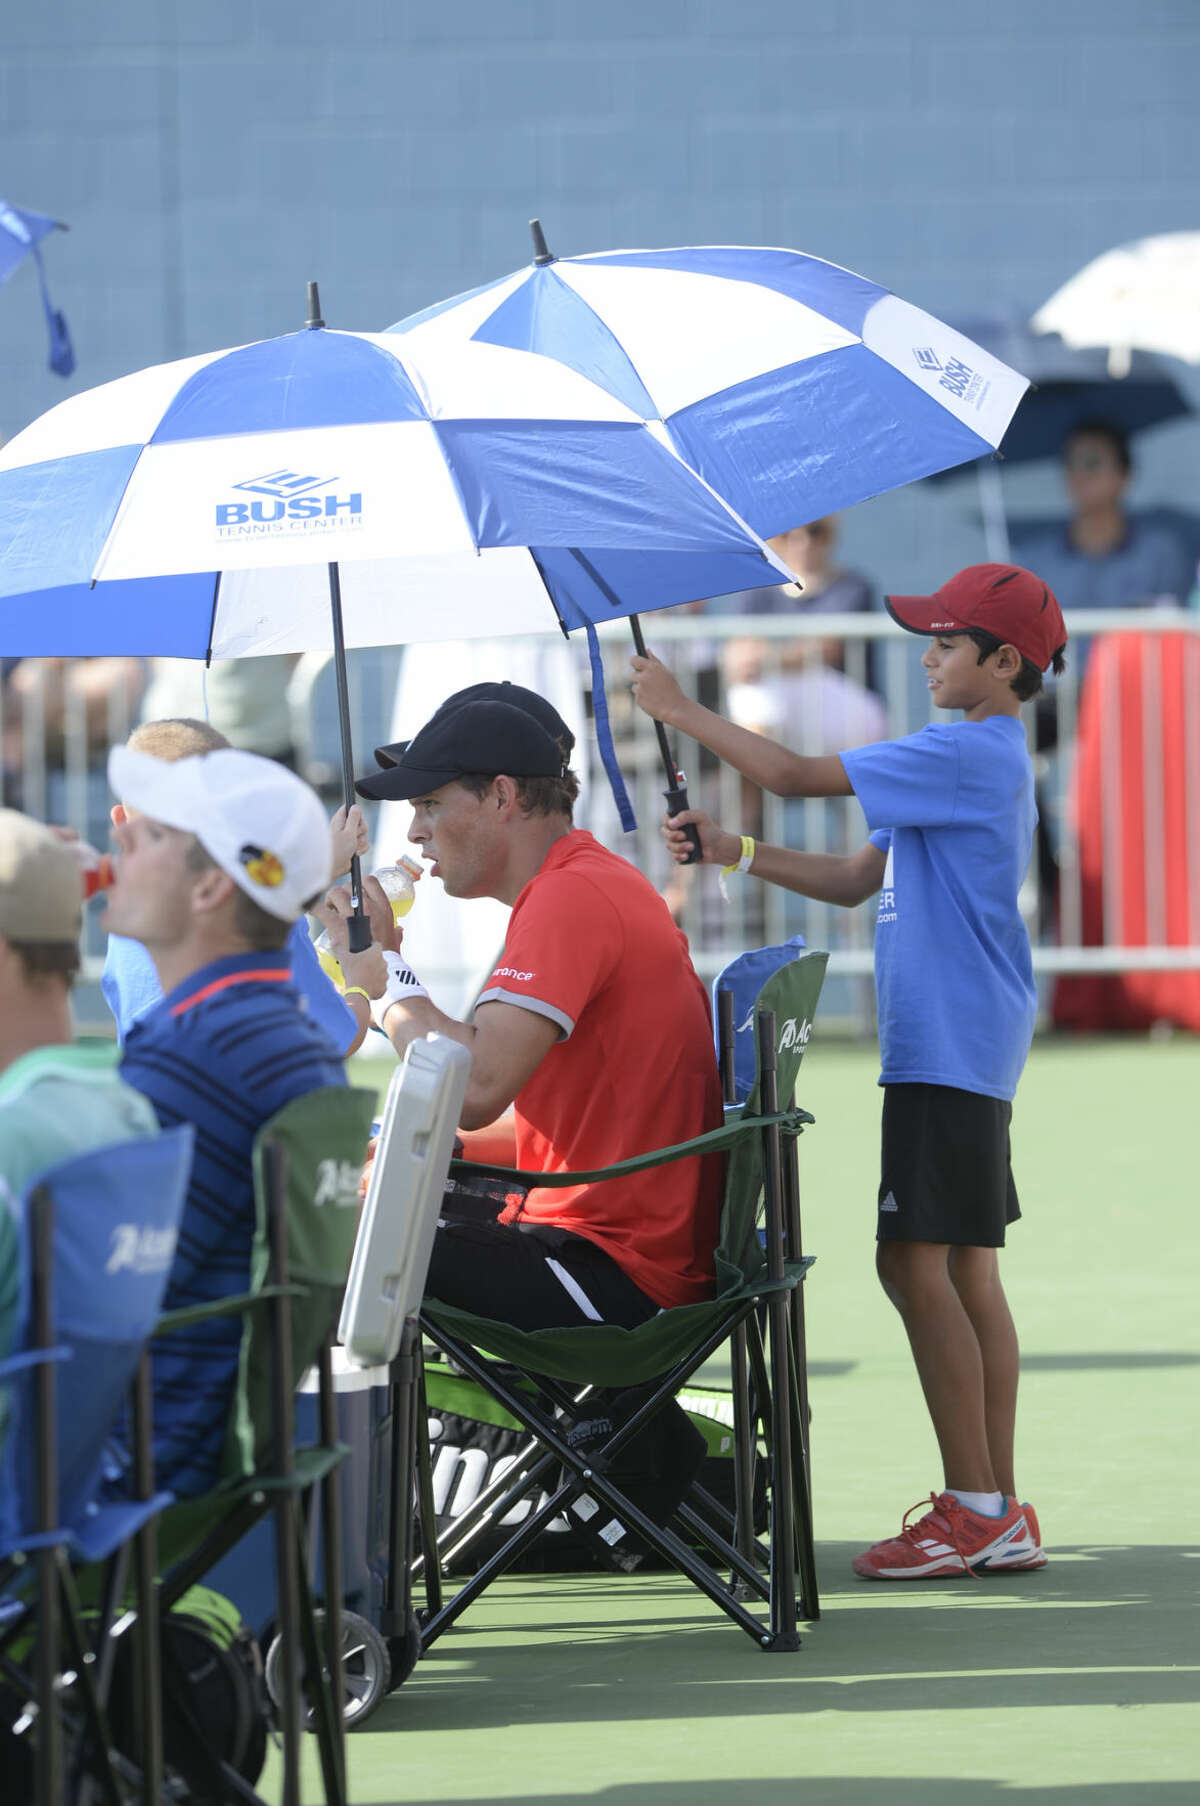 Mike and Bob Bryan cool off with some assistance from volunteer umbrella holders during the West Texas Tennis Classic on Saturday, Sept. 26, 2015, at Bush Tennis Center. James Durbin/Reporter-Telegram